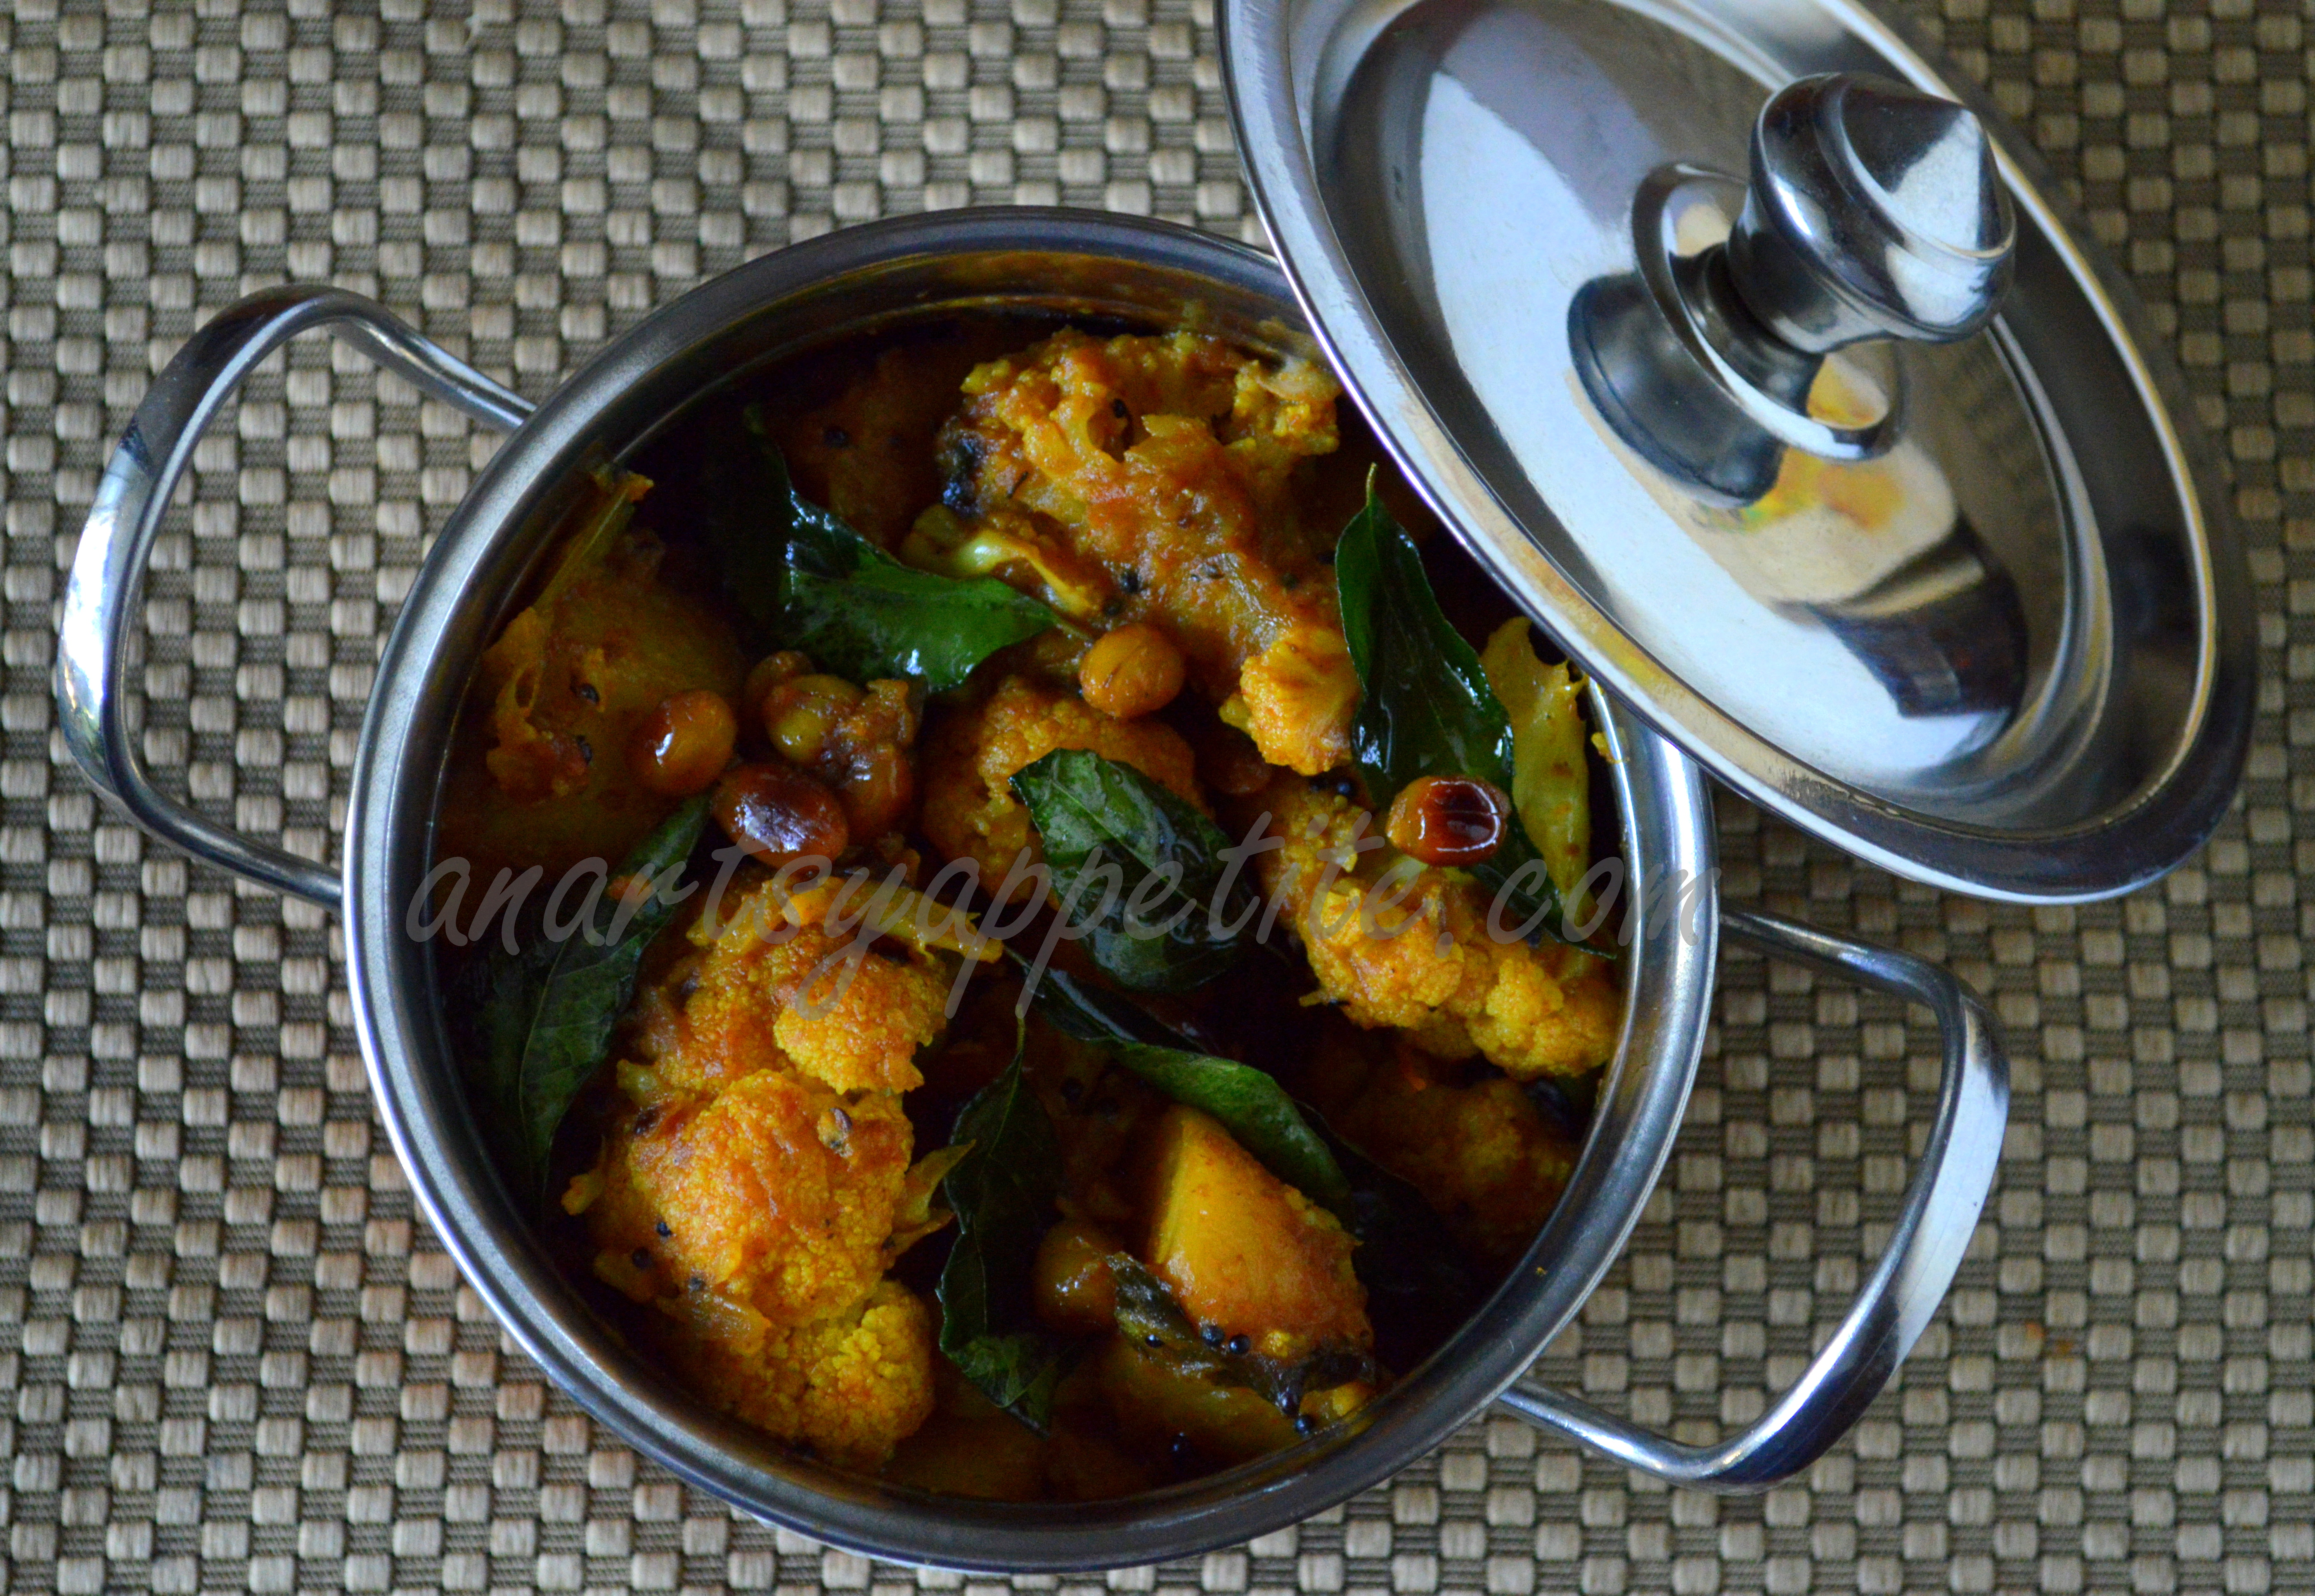 Aloo gobi recipe south indian style potato cauliflower curry an aloo gobi recipe south indian style forumfinder Image collections